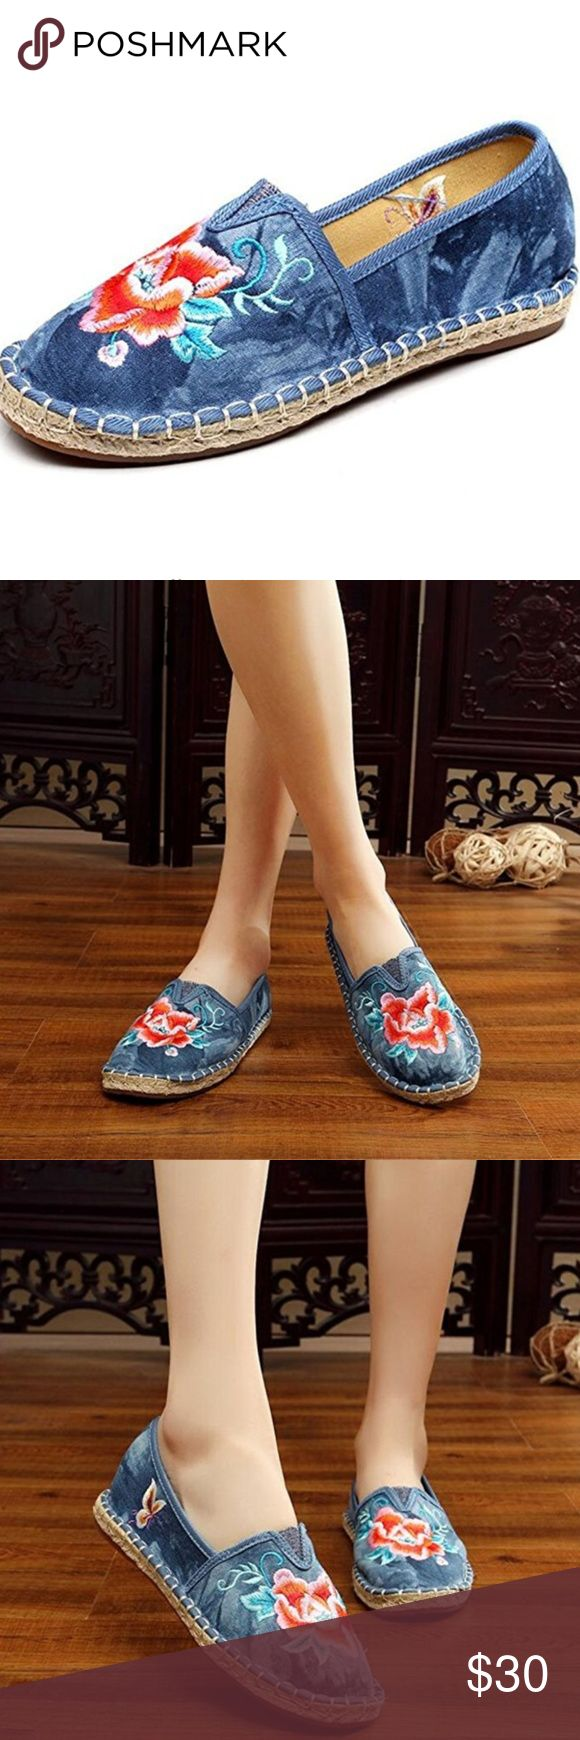 Embroidered Floral & Tie-Dye Espadrilles Women's Embroidered Floral Espadrilles Lightly used, only worn 2-3 times.  No box. Flat with Tie-dye Background Casual  Canvas Rubber non-skid sole Cotton-blend Easy On and Off Size: 9.5 Shoes Espadrilles